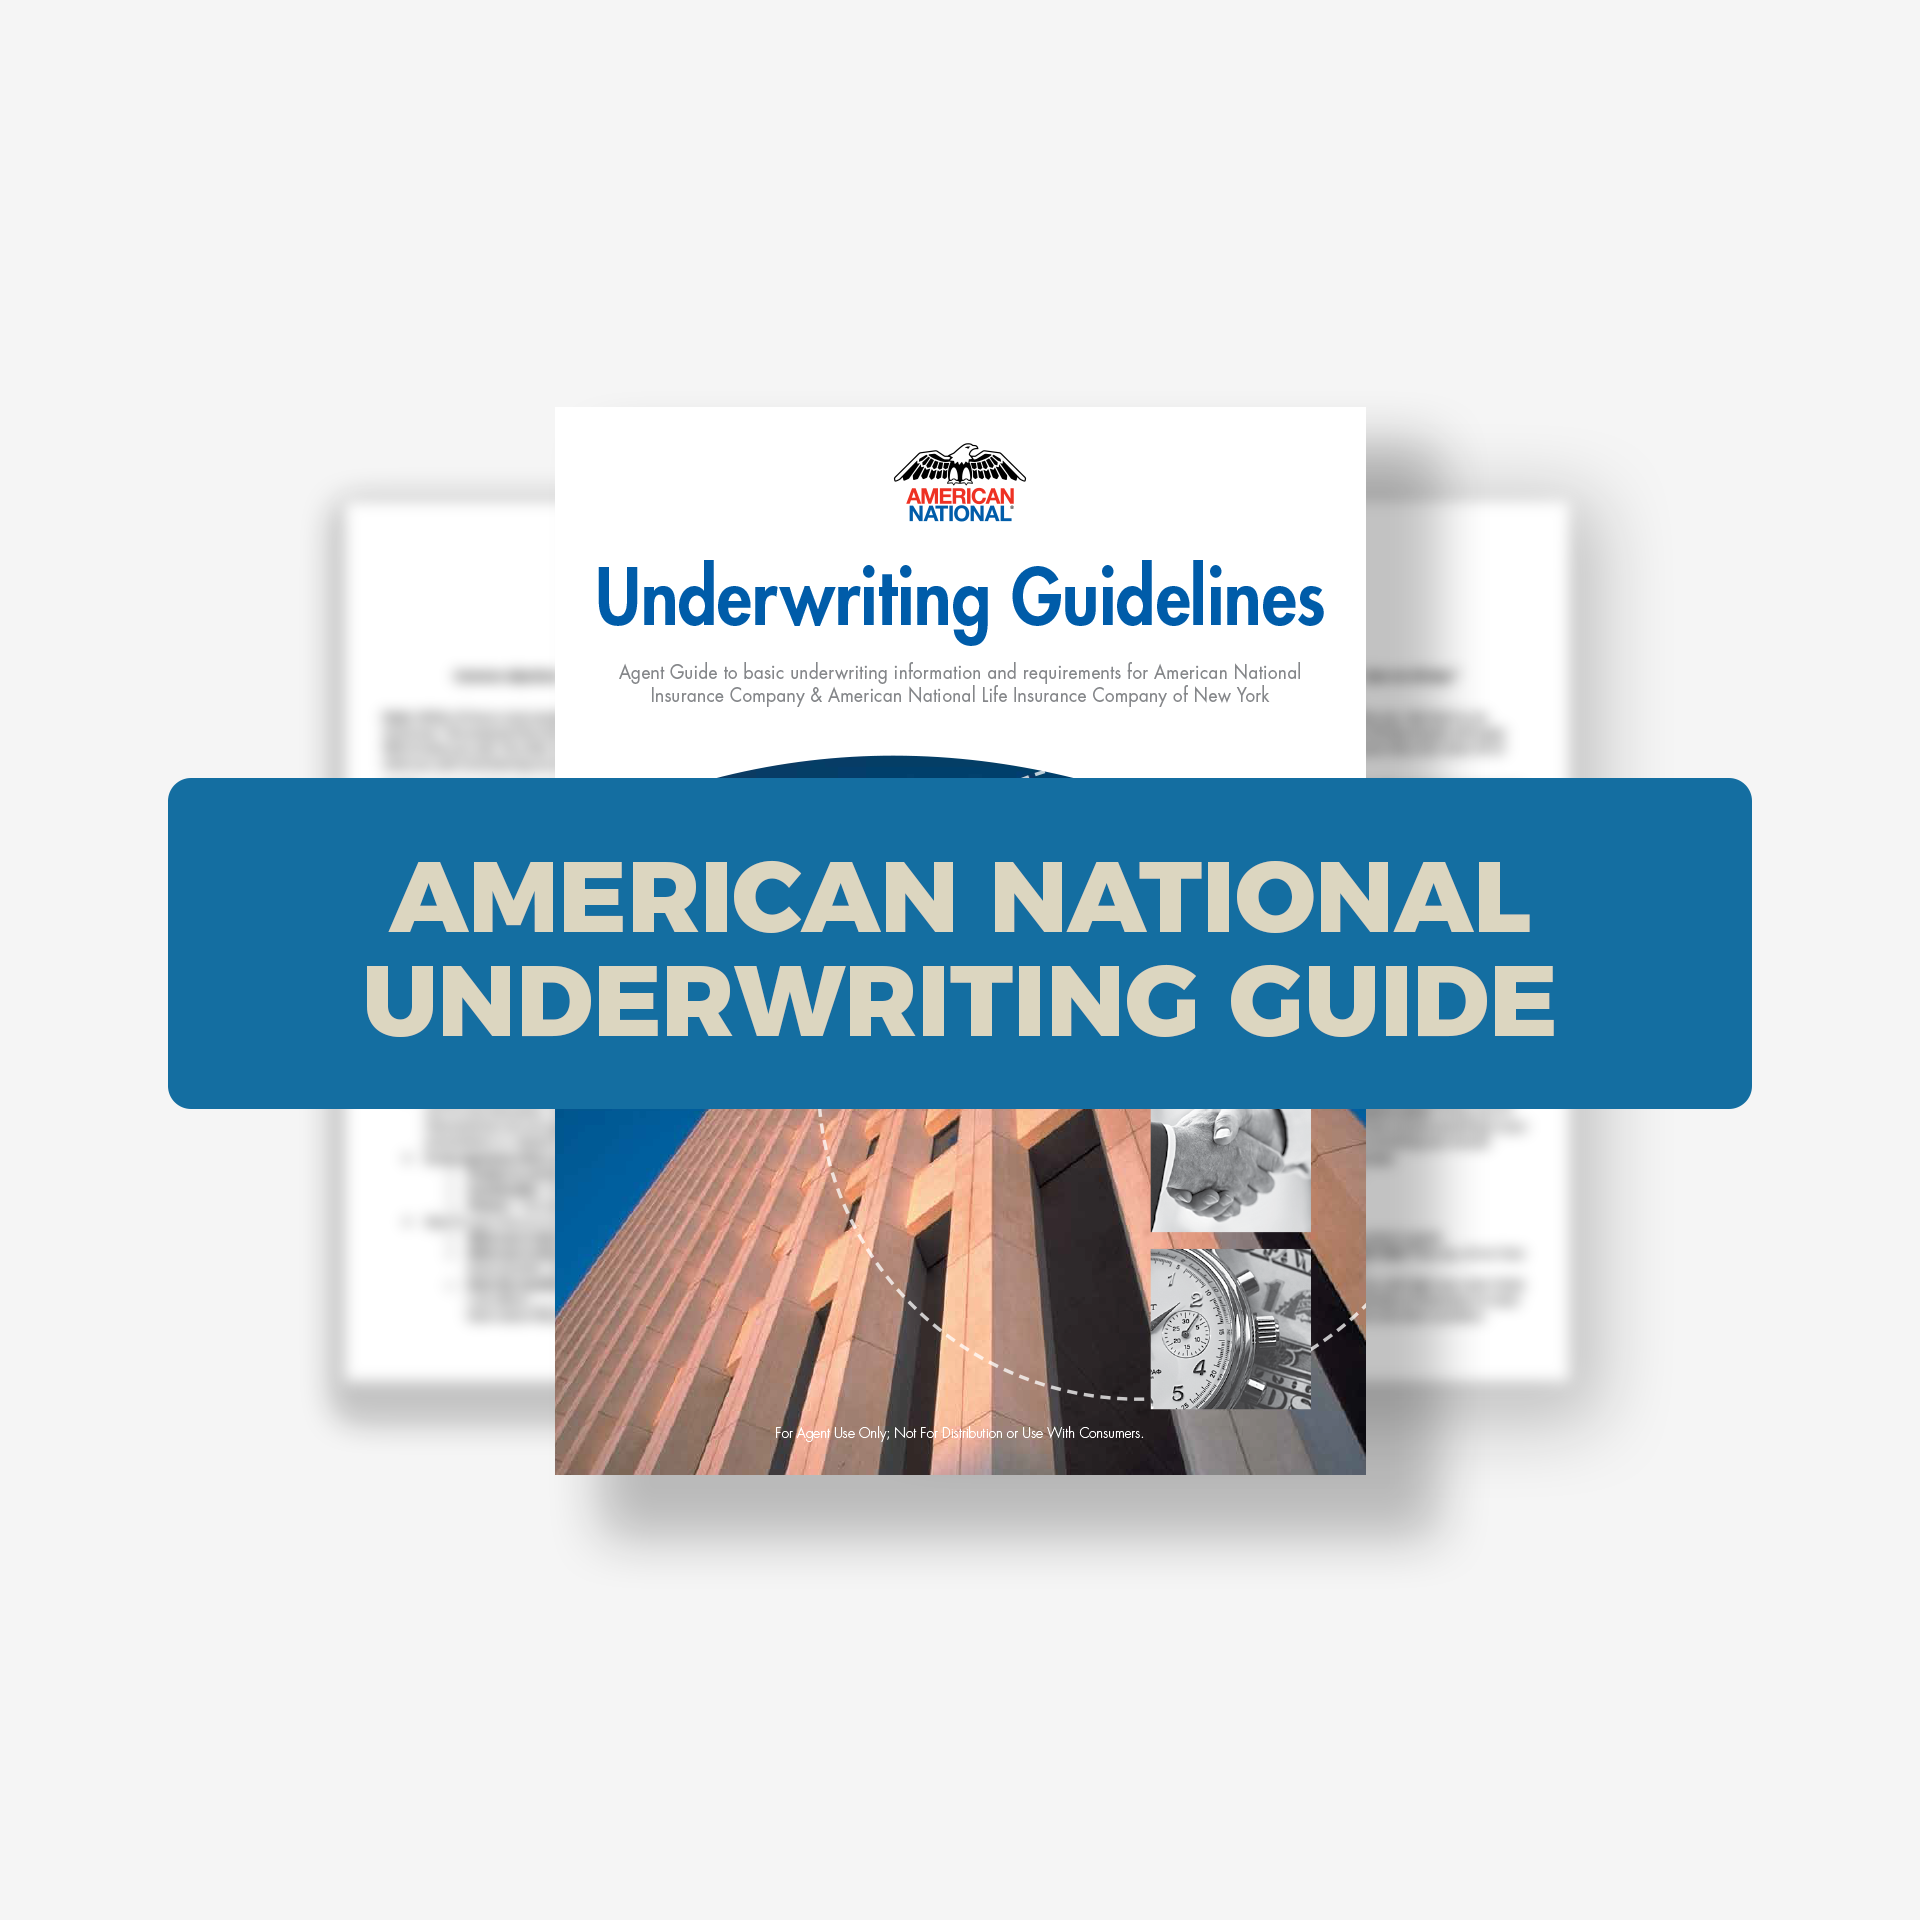 American National Underwriting Guide.png